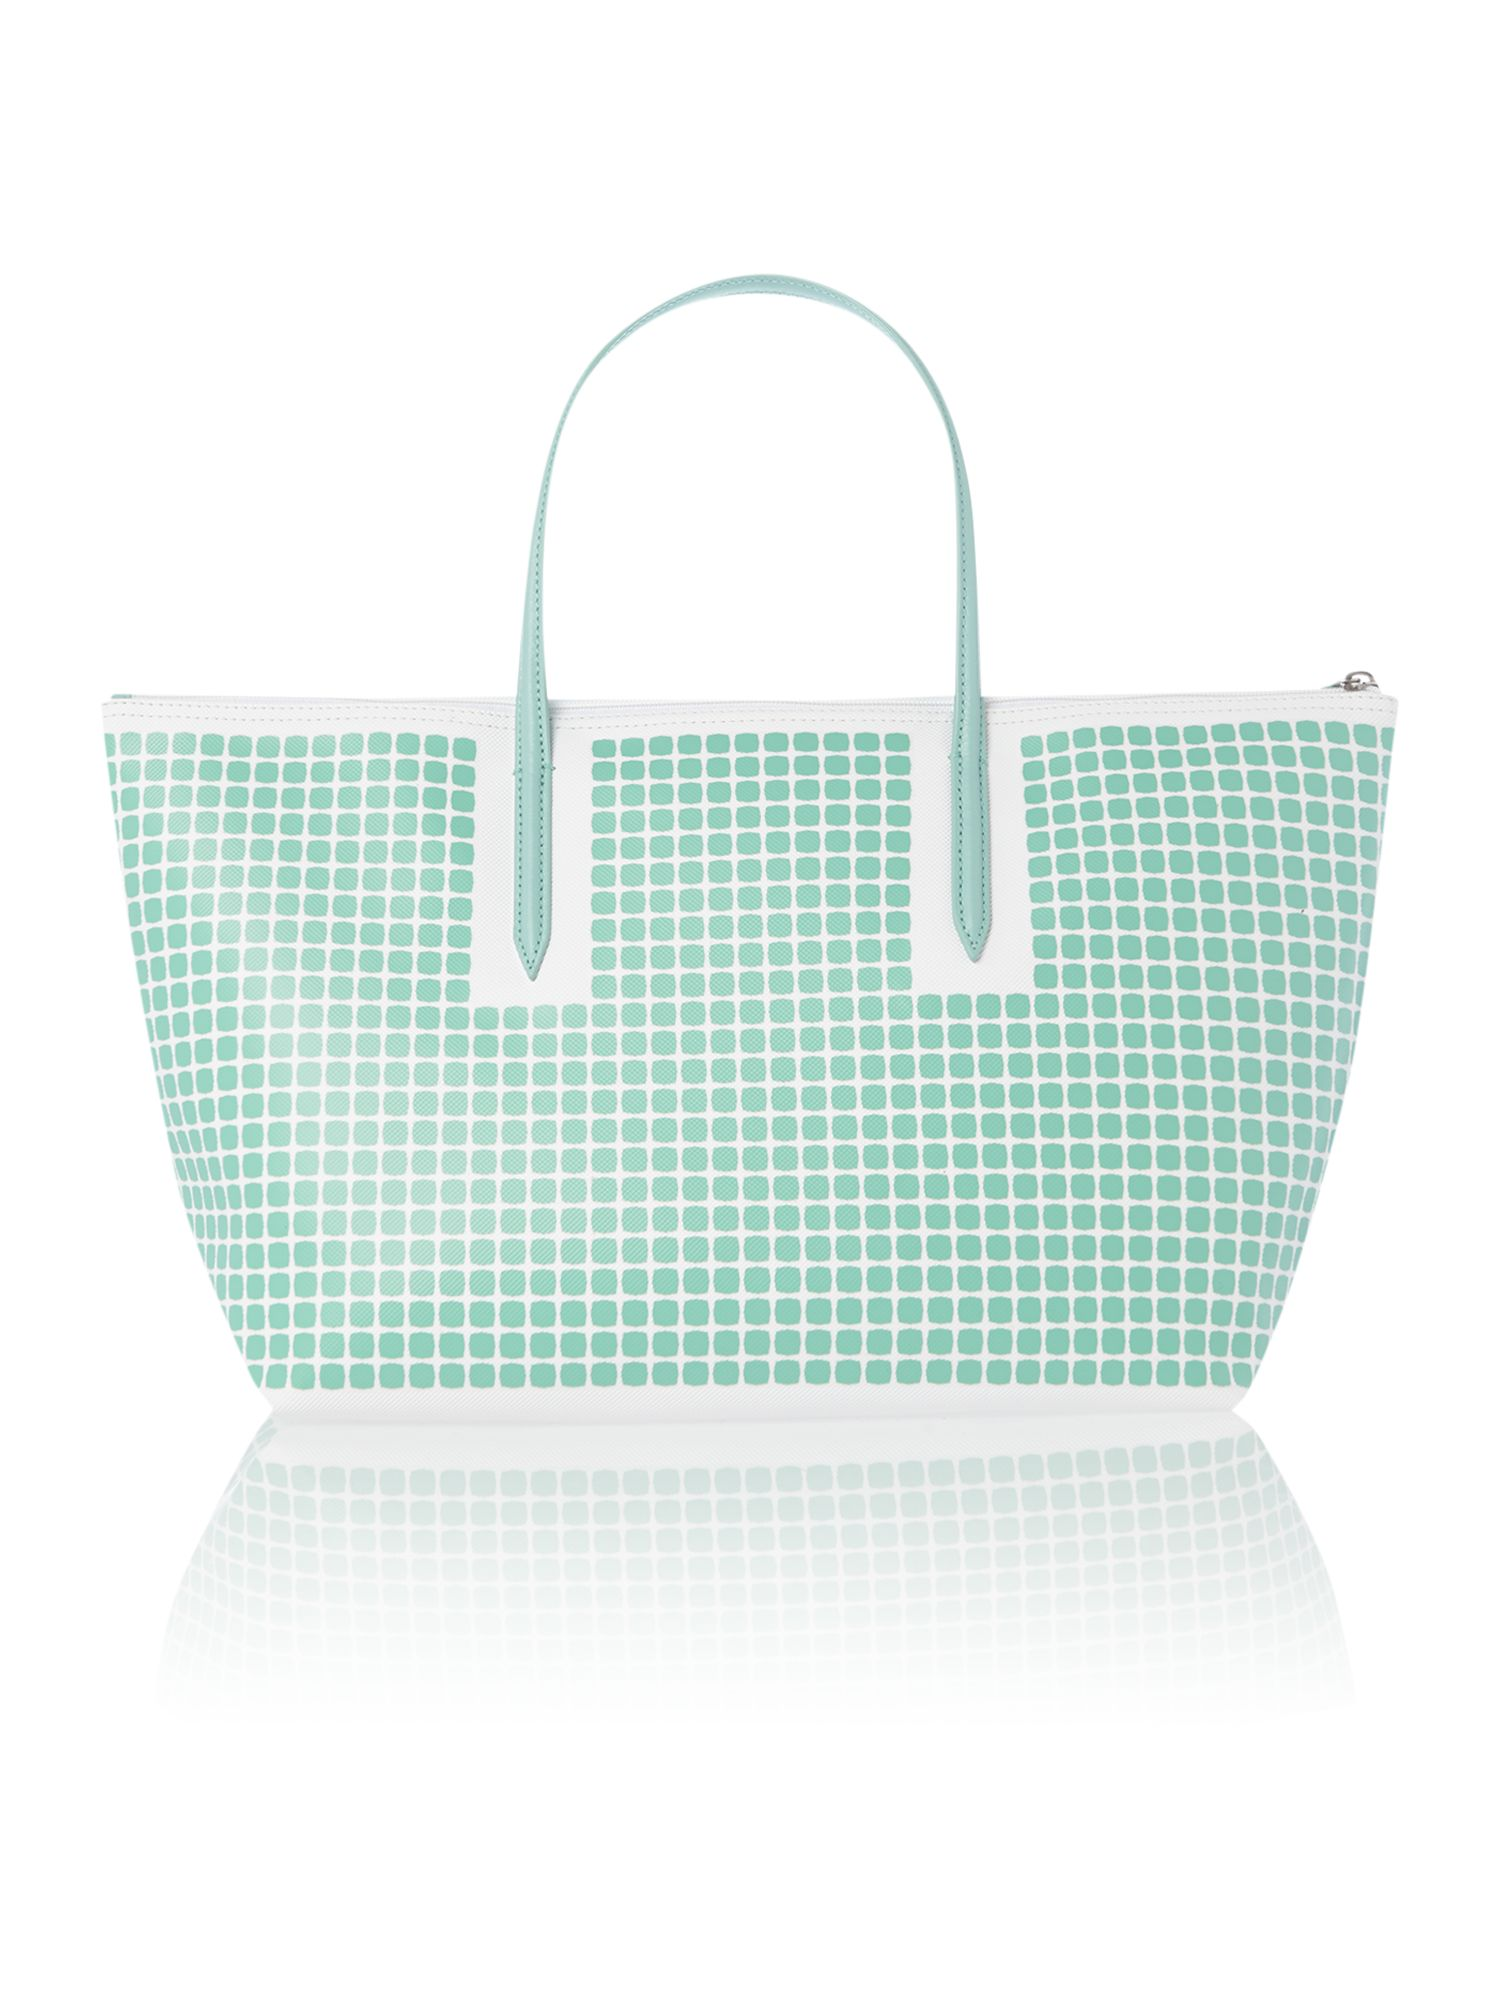 Green print tote bag